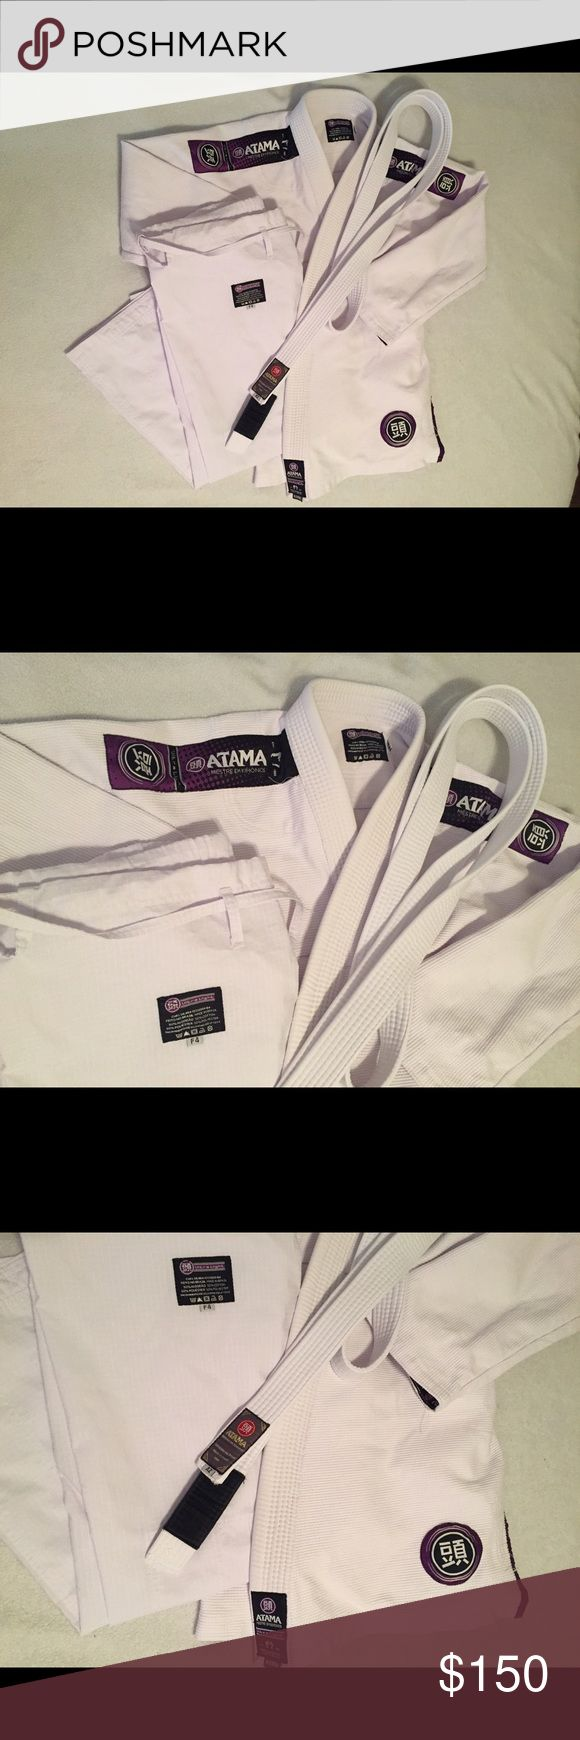 ATAMA Women's BJJ Gi My Atama Gi has been worn a few times. Great, almost new condition. I'm switching gyms and had to buy a different one.  More info: www.atamausa.com for size chart   Atama Ultra Light Kimono Women's, size F4 Atama Jiu Jitsu White Belt, size A2 ATAMA Other